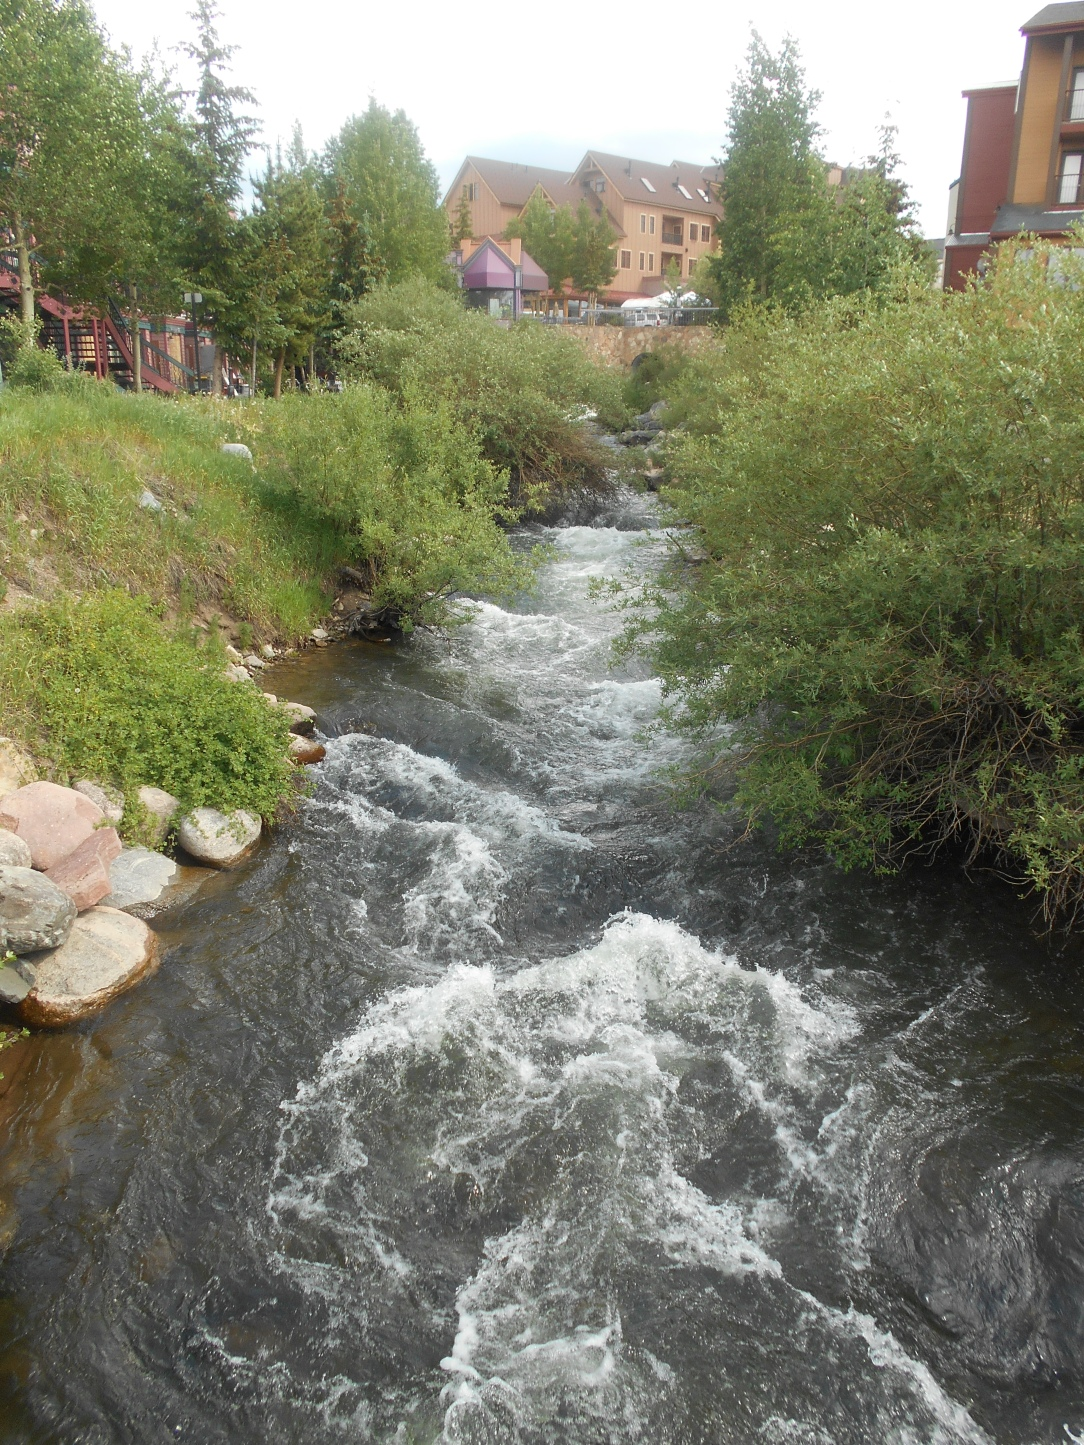 River running through Breckenridge